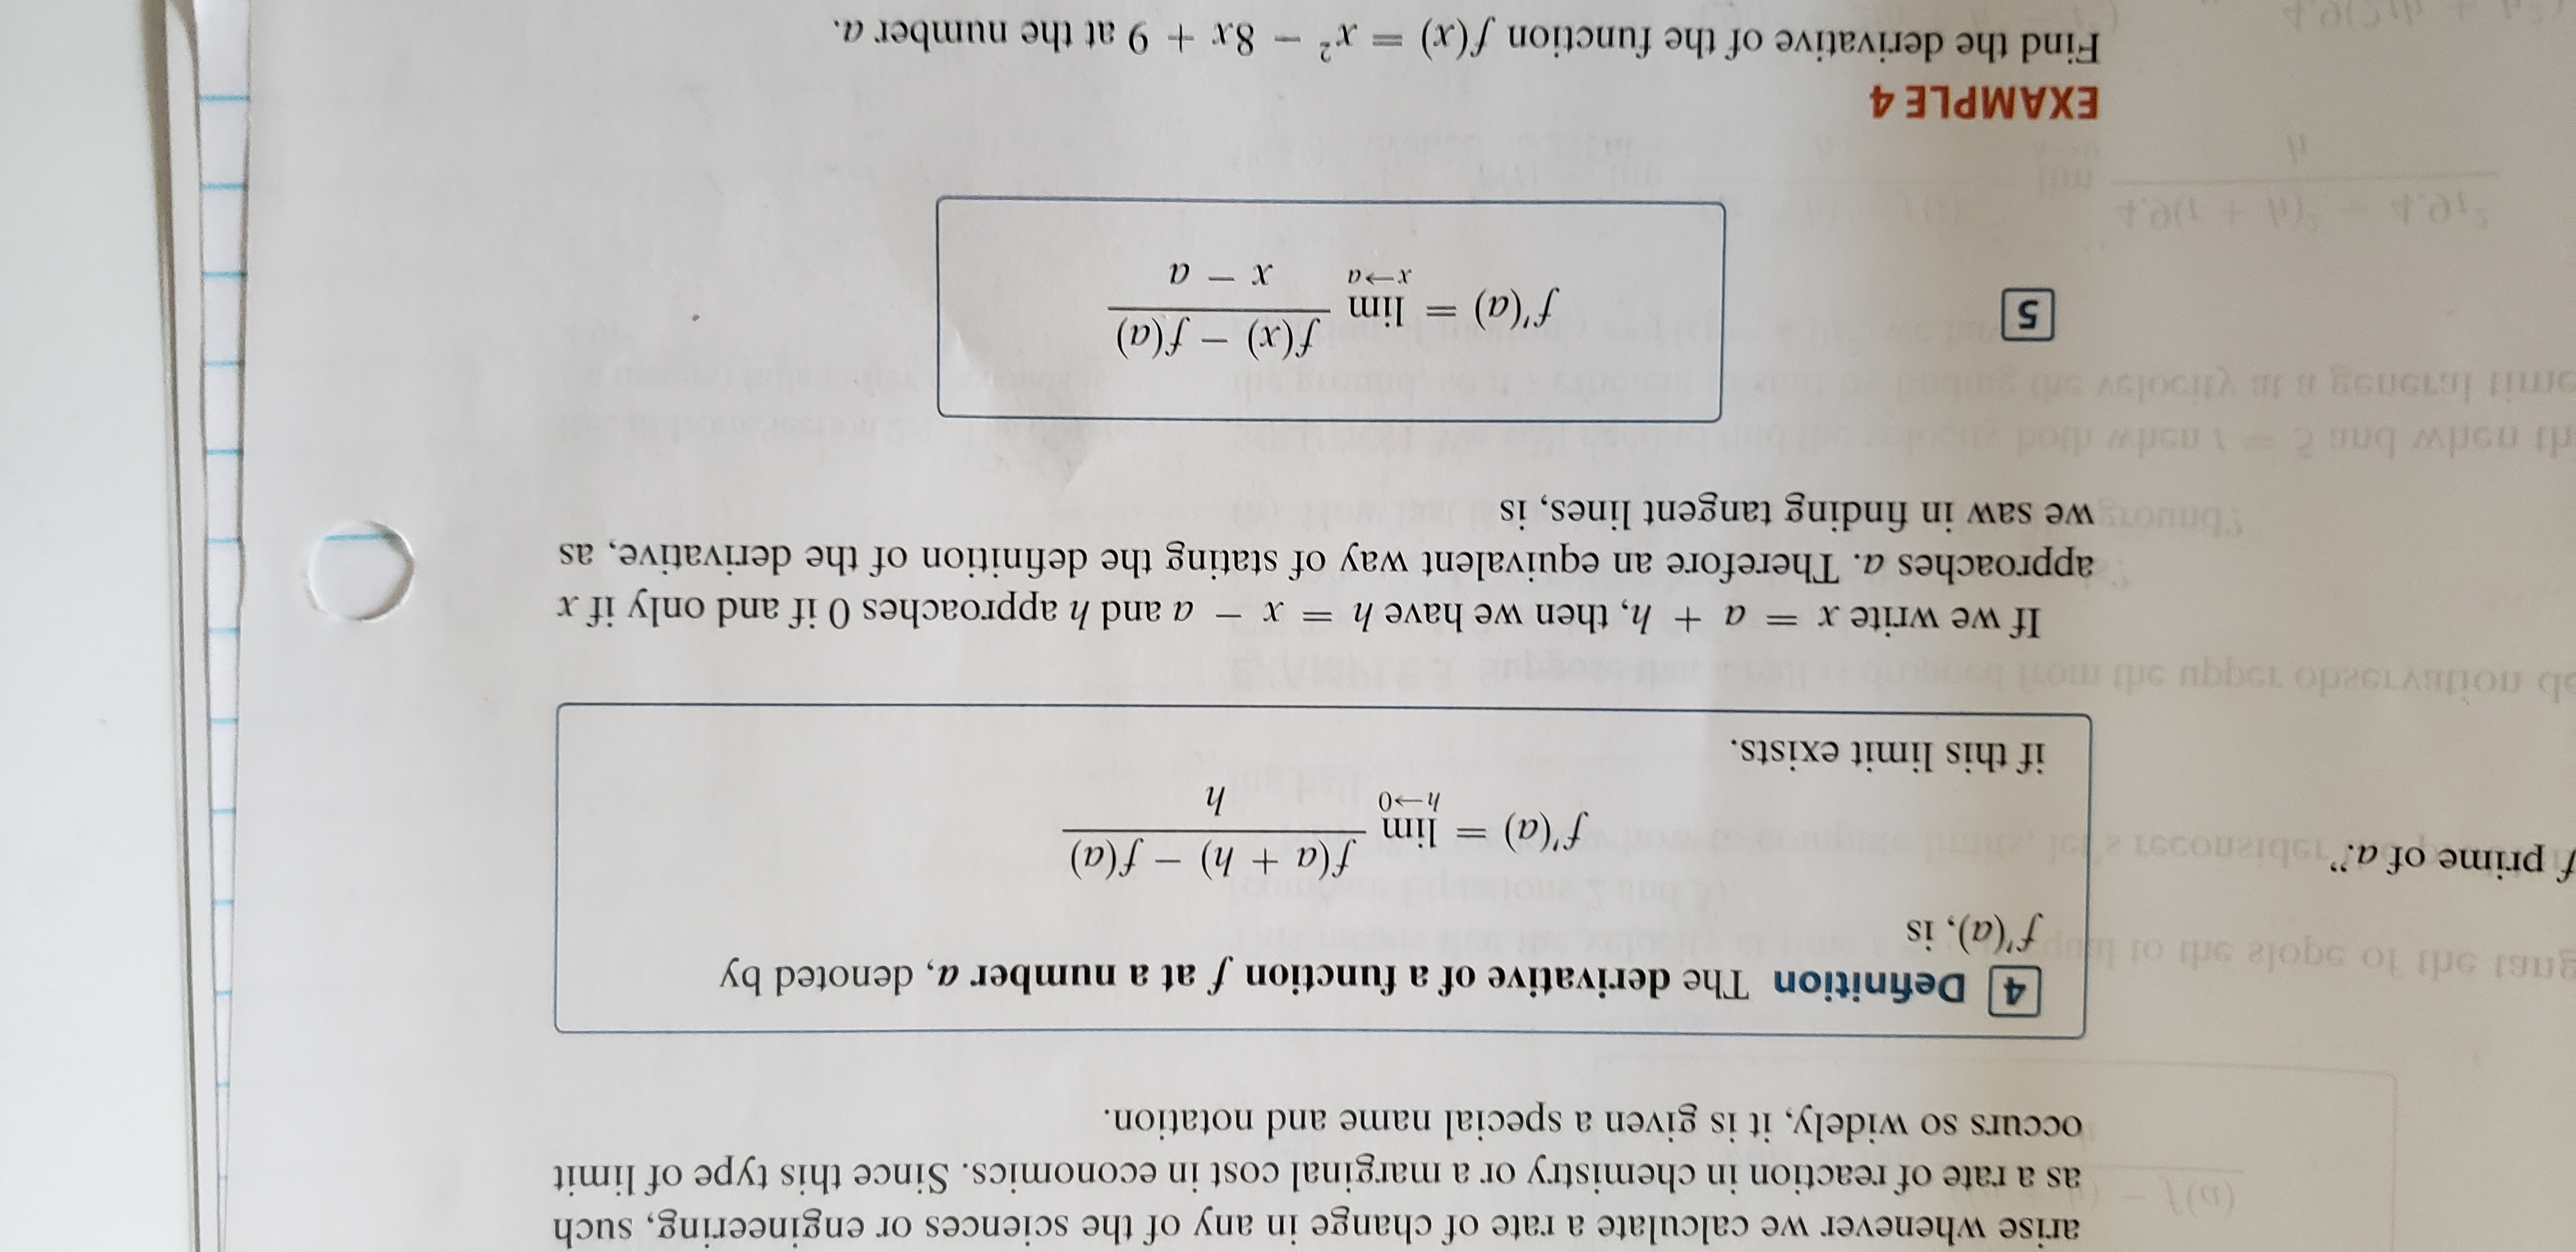 """arise whenever we calculate a rate of change in any of the sciences or engineering, such as a rate of reaction in chemistry or a marginal cost in economics. Since this type of limit occurs so widely, it is given a special name and notation. 4 Definition The derivative of a function f at a number a, denoted by f'(a), is gnsi o lo sgole orli of f prime of a.""""obiznos l f(a + h) – f(a) lim (v),f if this limit exists. ab noitsvoado 1ogqu ort moil - a and h approaches 0 if and only if x approaches a. Therefore an equivalent way of stating the definition of the derivative, as If we write xr = a + h, then we have h Sbnuon we saw in finding tangent lines, is GjoCIA omit leonog B Vlioolov UGLJ f'(a) = lim (v)f – (x)f 5. EXAMPLE 4 Find the derivative of the function f(x) = x² - 8x + 9 at the number a. %3D"""